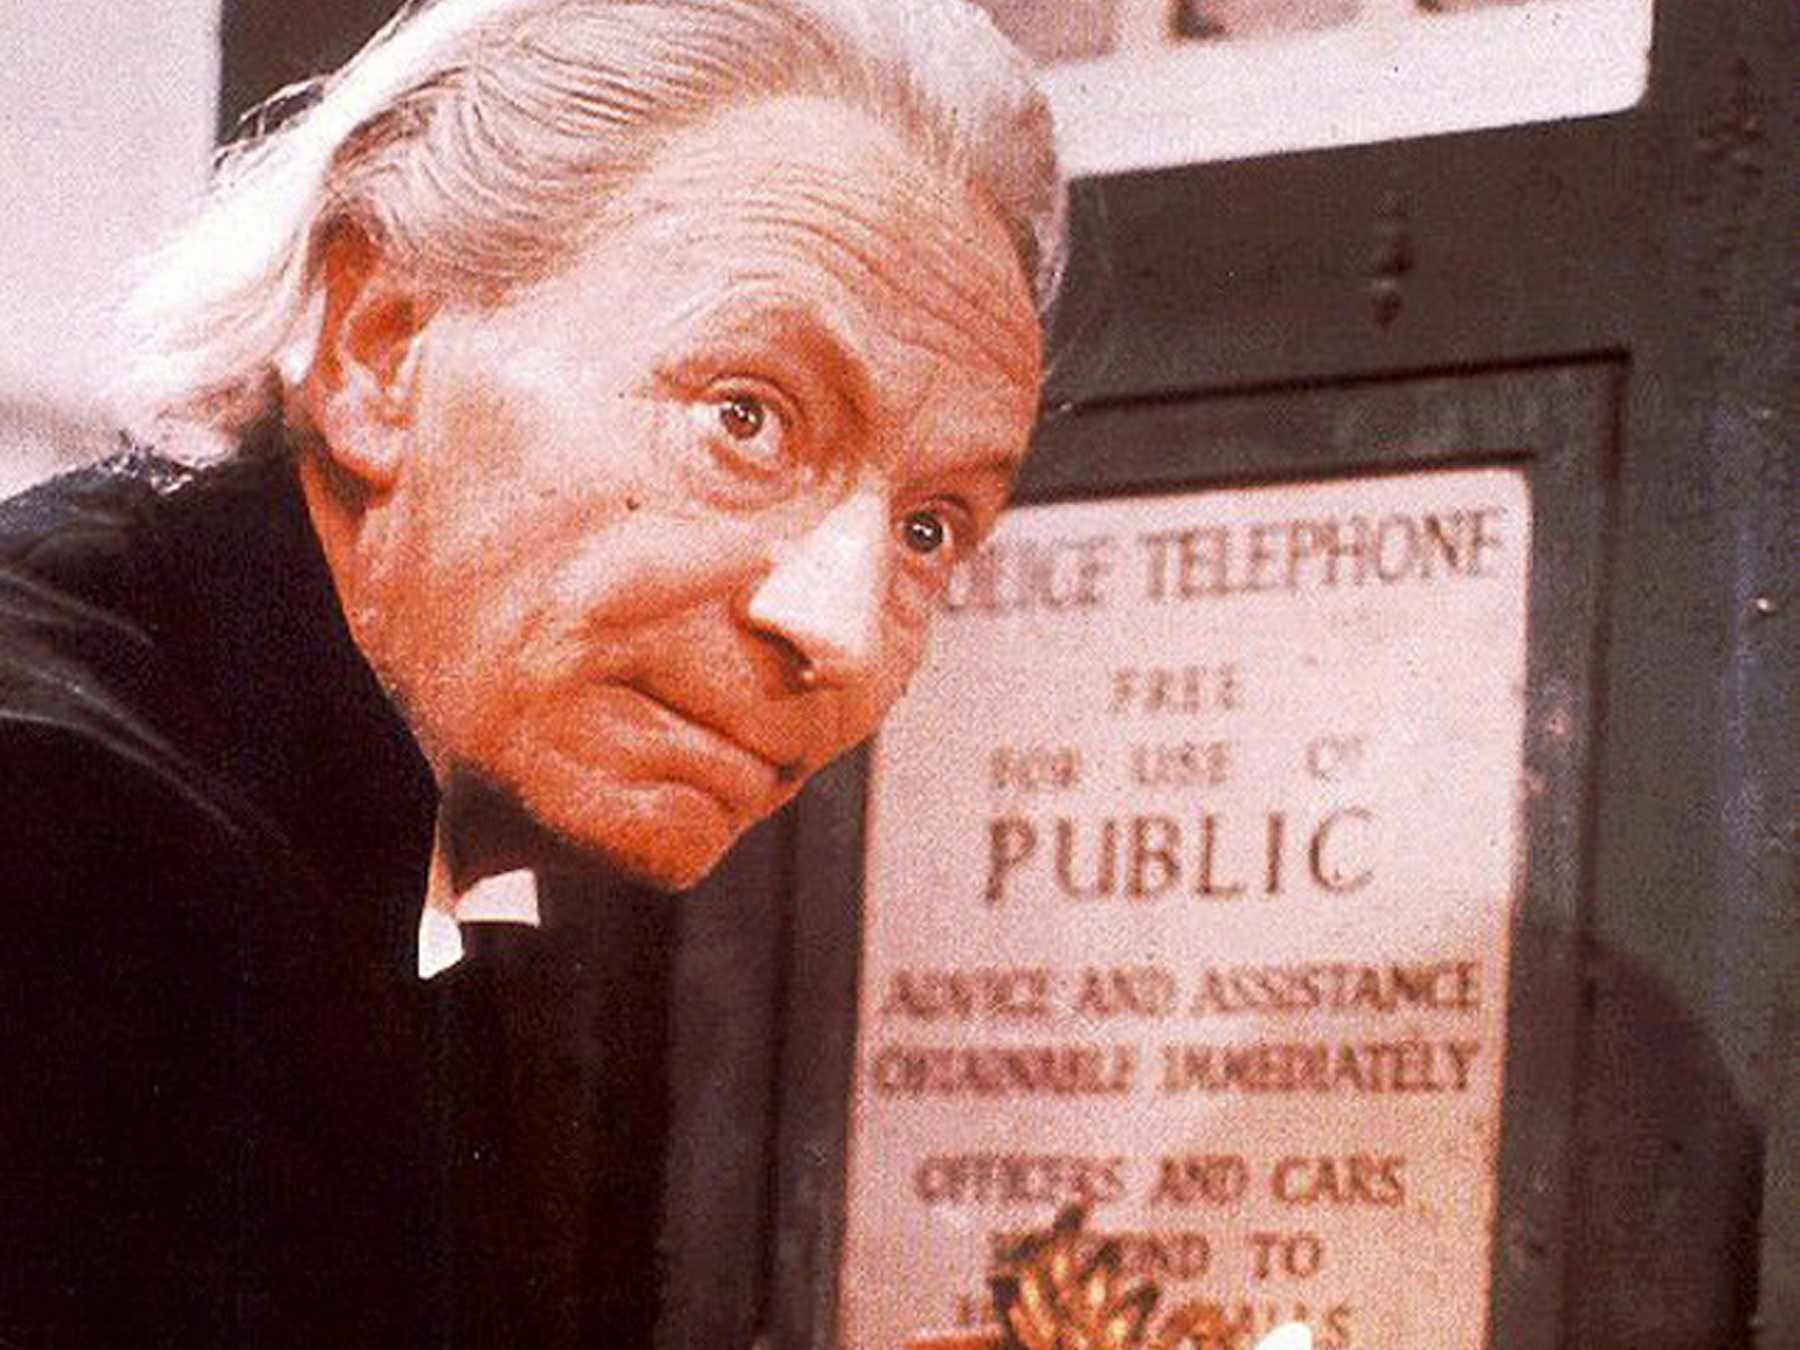 BBC Confirms Missing Doctor Who Episodes Found